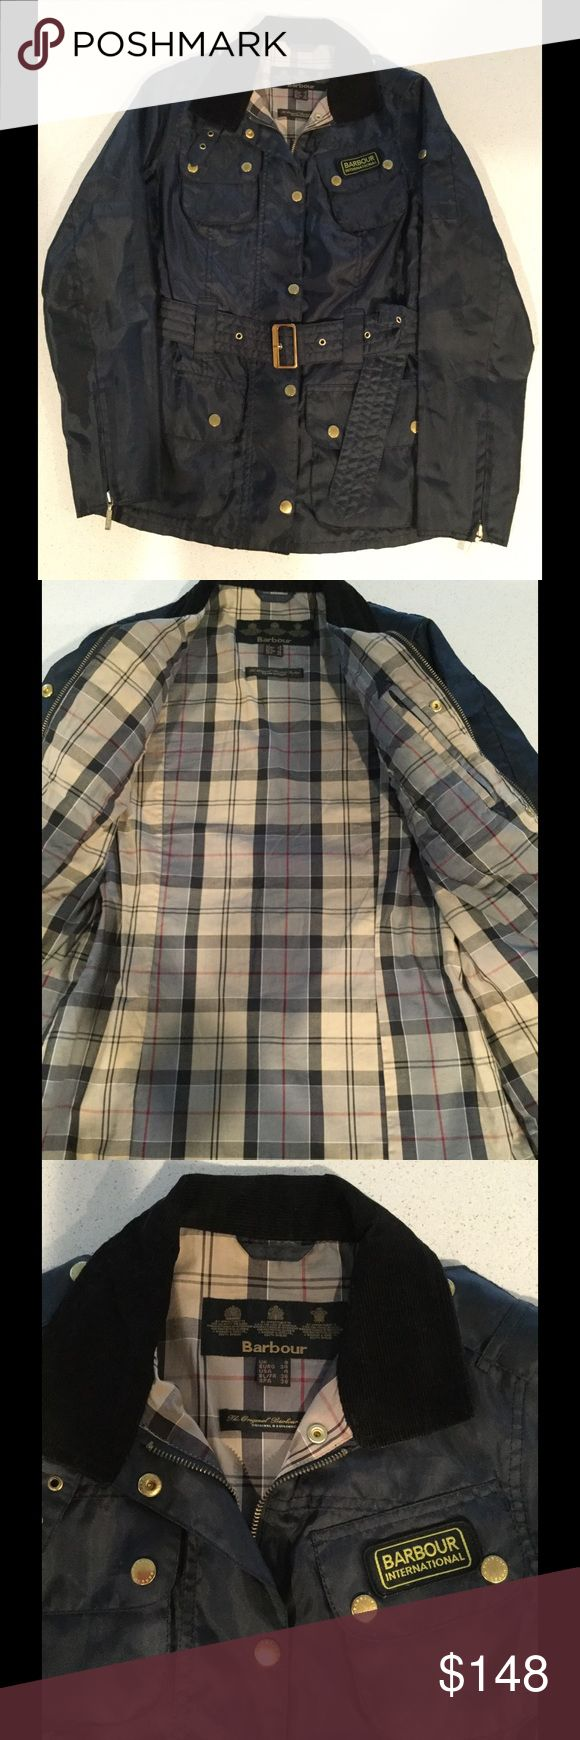 Ladies Barbour International Navy Belted Jacket 4 Ladies Barbour International Navy Belted Jacket Size 4. Excellent condition, like new, worn twice!!!  This is a awesome jacket and is not made of the waxed cotton, but a nylon windbreaker material. Barbour Jackets & Coats